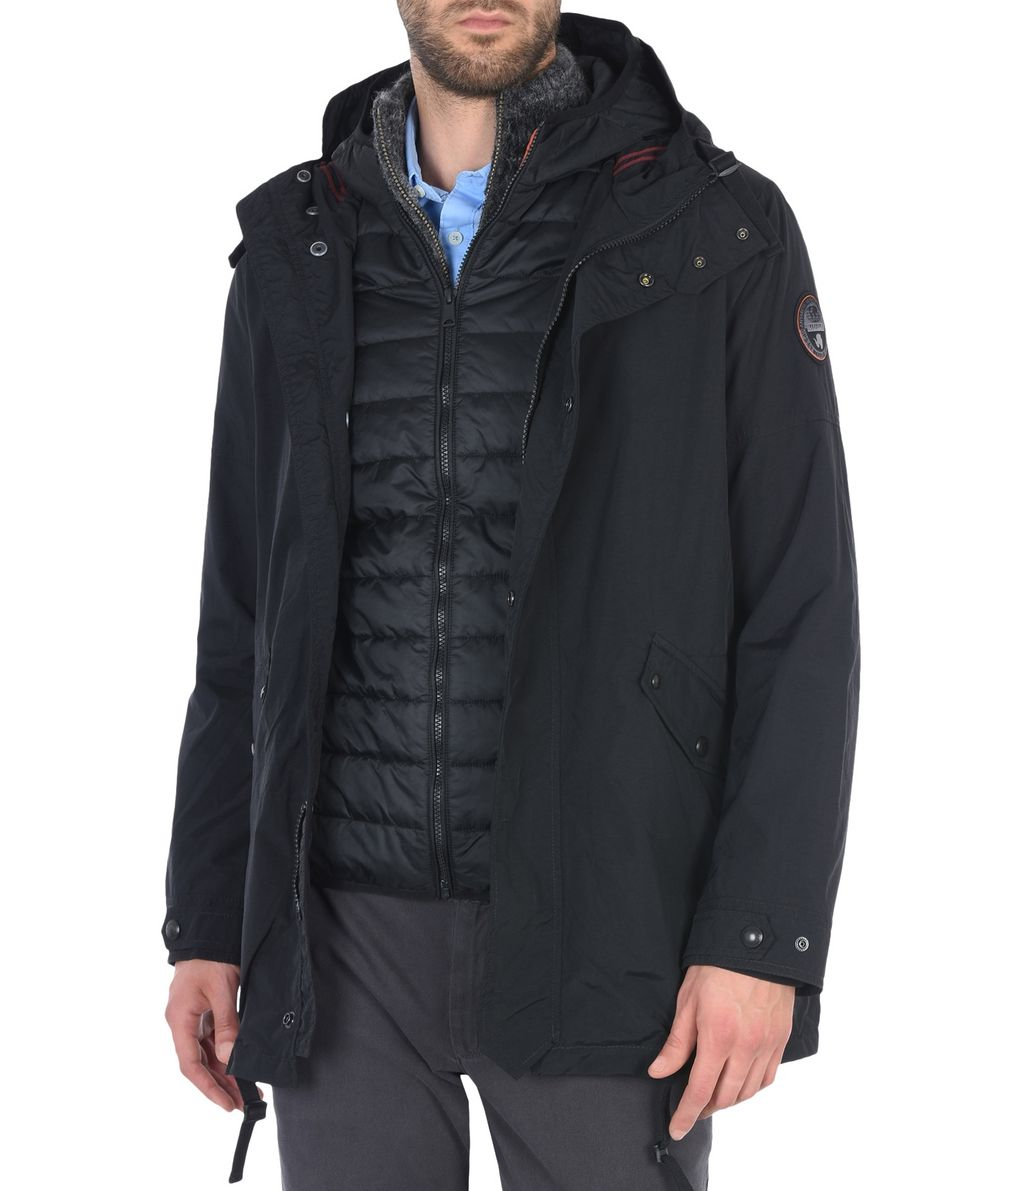 NAPAPIJRI ANNONAY 3IN1 MAN PARKA,BLACK